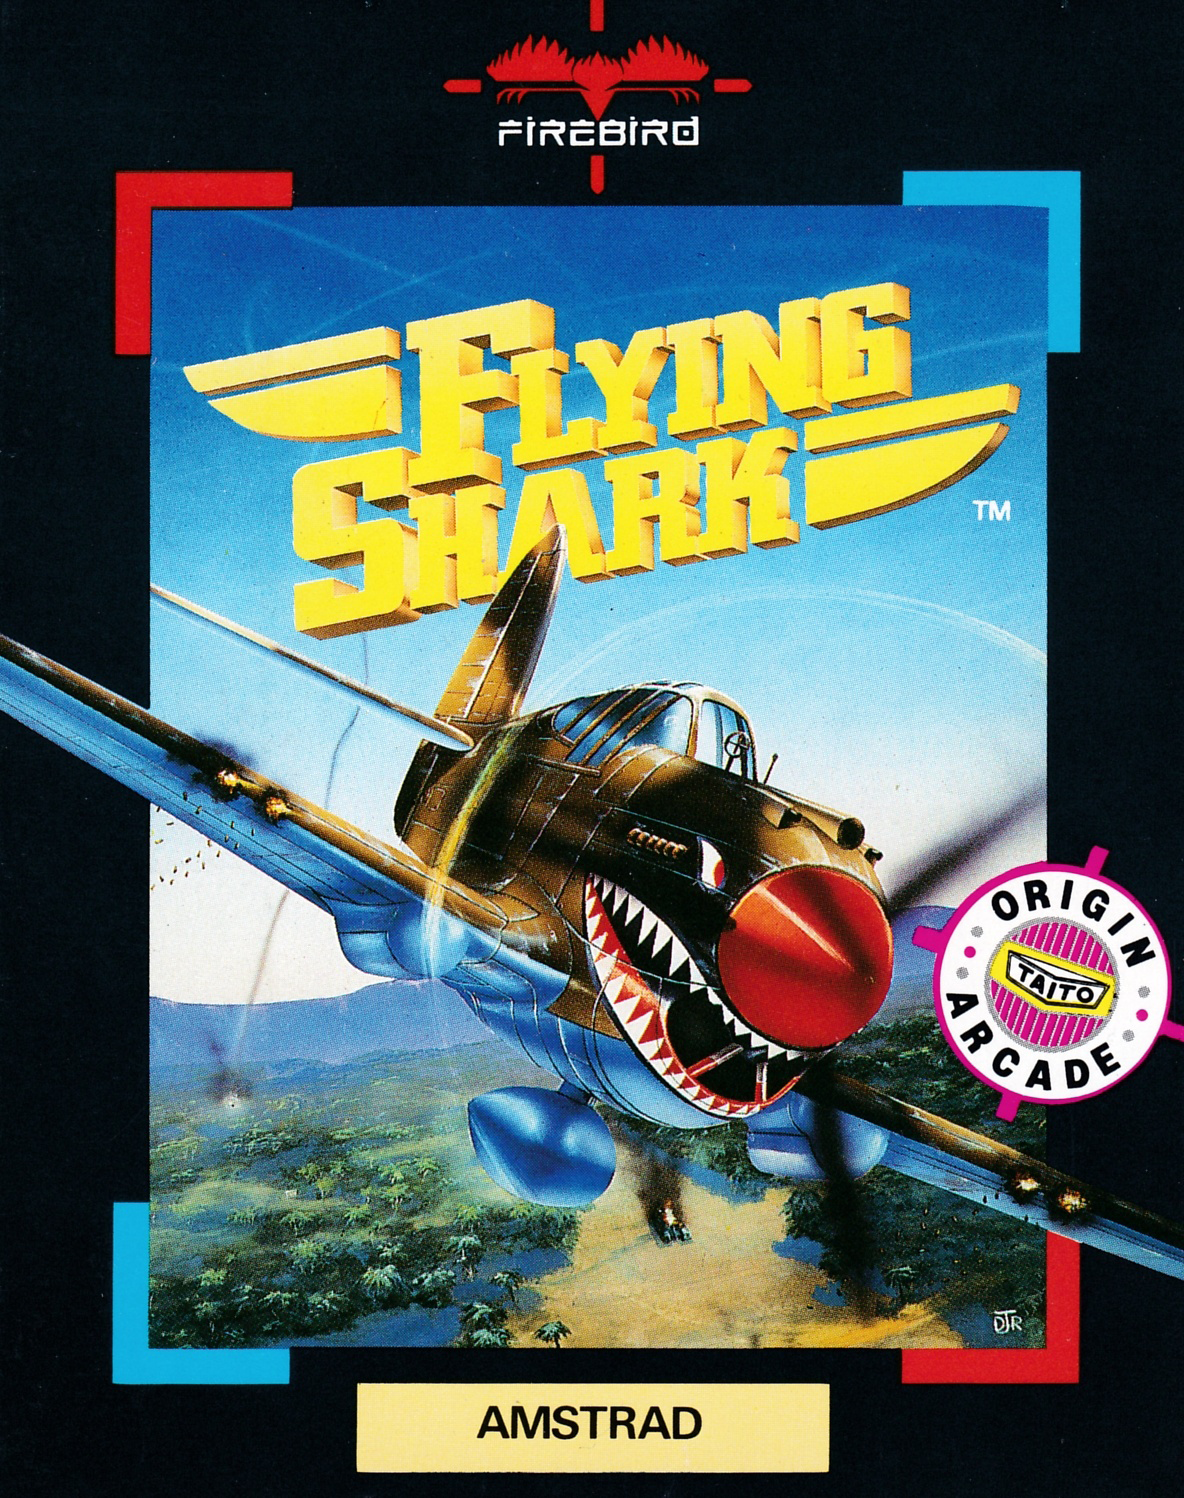 Flying Shark by Taito edited by Firebird on Amstrad CPC (1987)